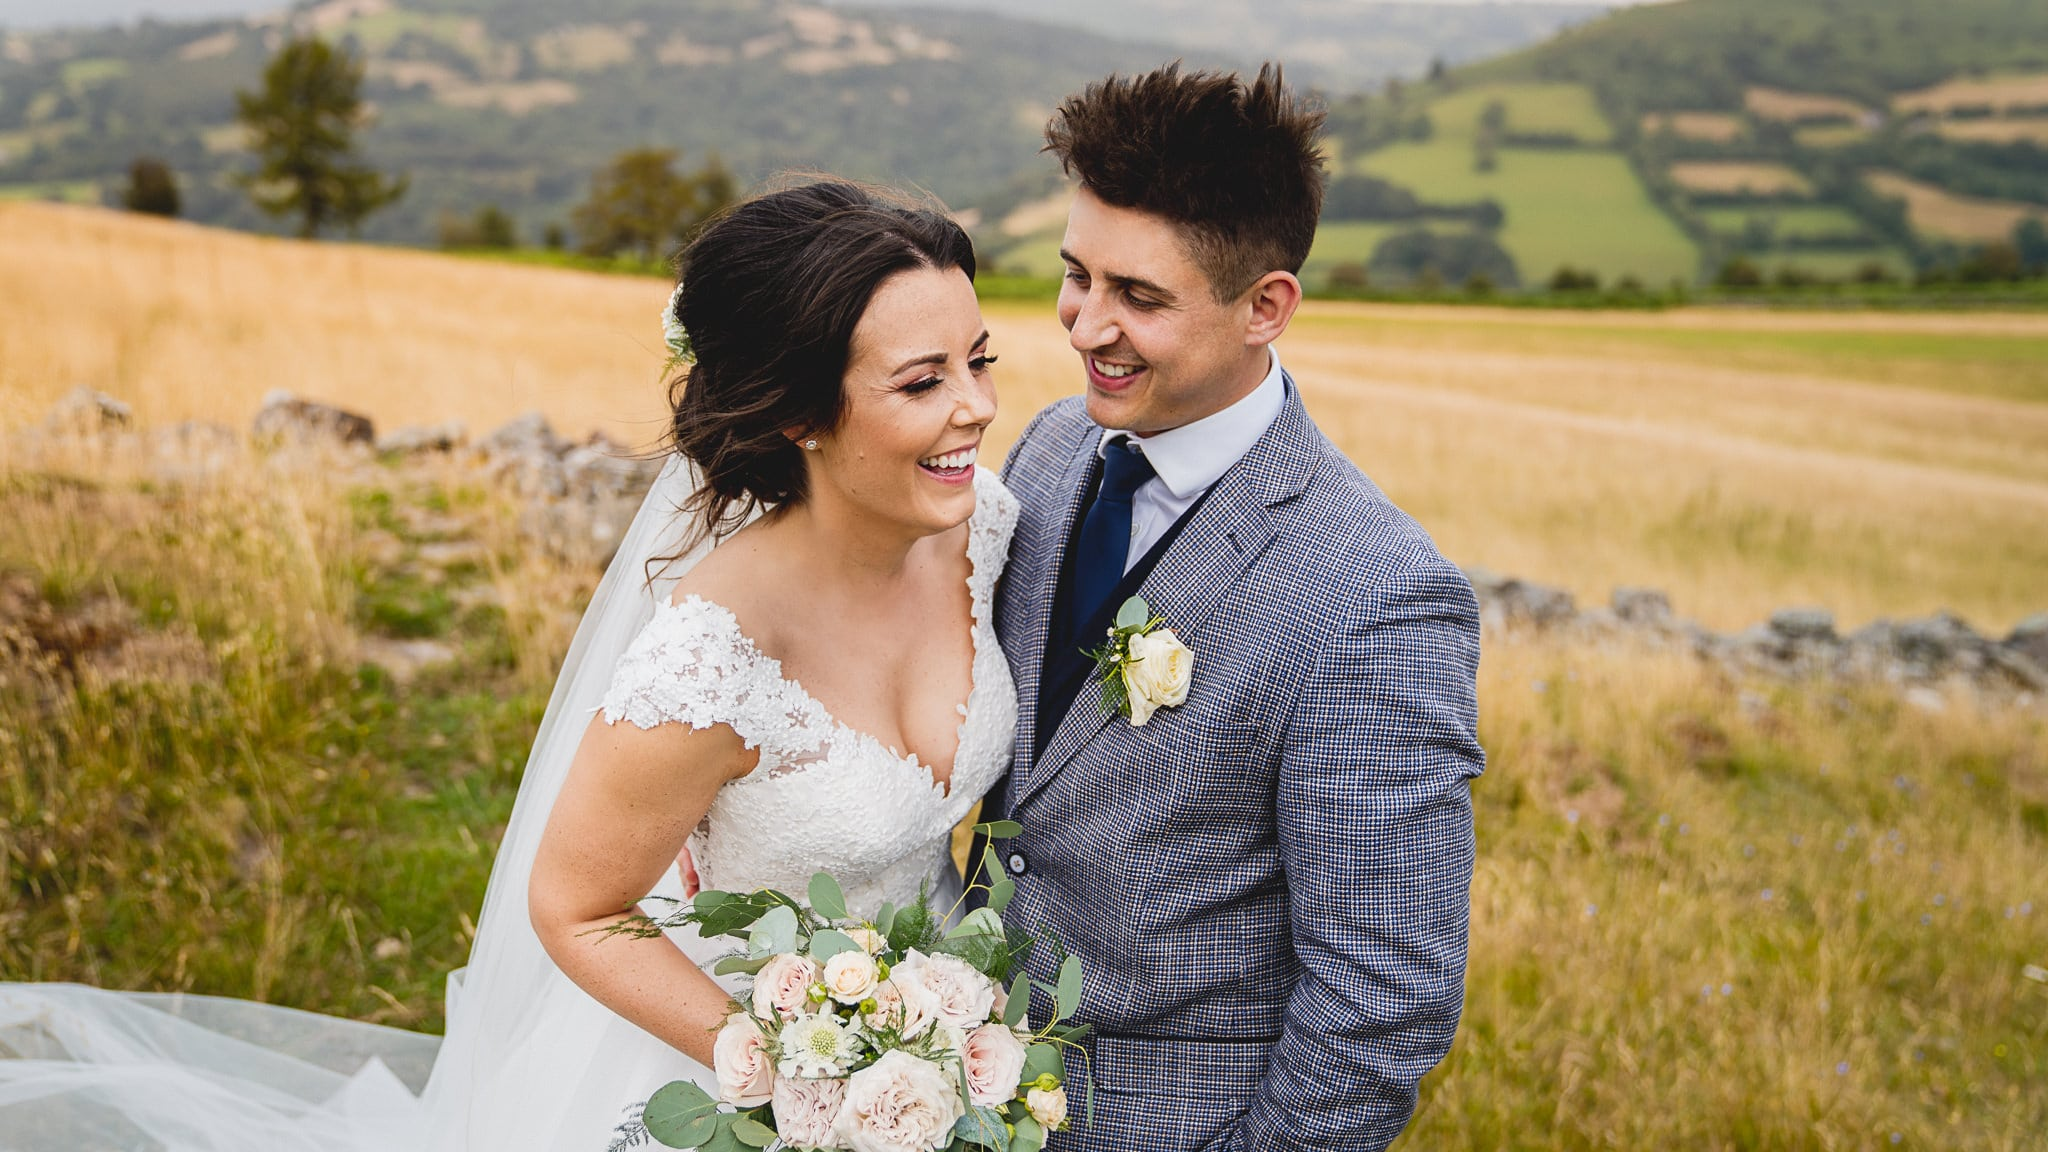 Sugar loaf barn wedding photography in South Wales of bride and groom laughing-1